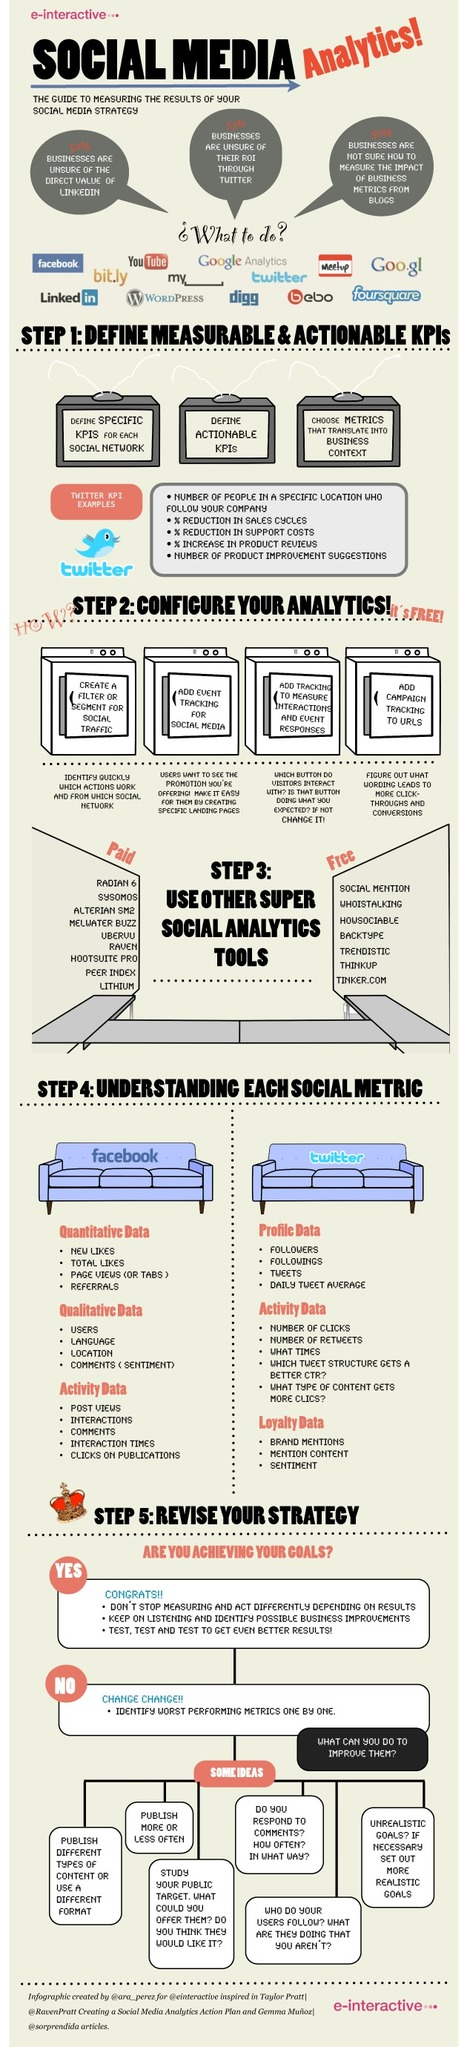 Measure Your Social Media Strategy with this Great Guide [Infographic] | Curation, Social Business and Beyond | Scoop.it